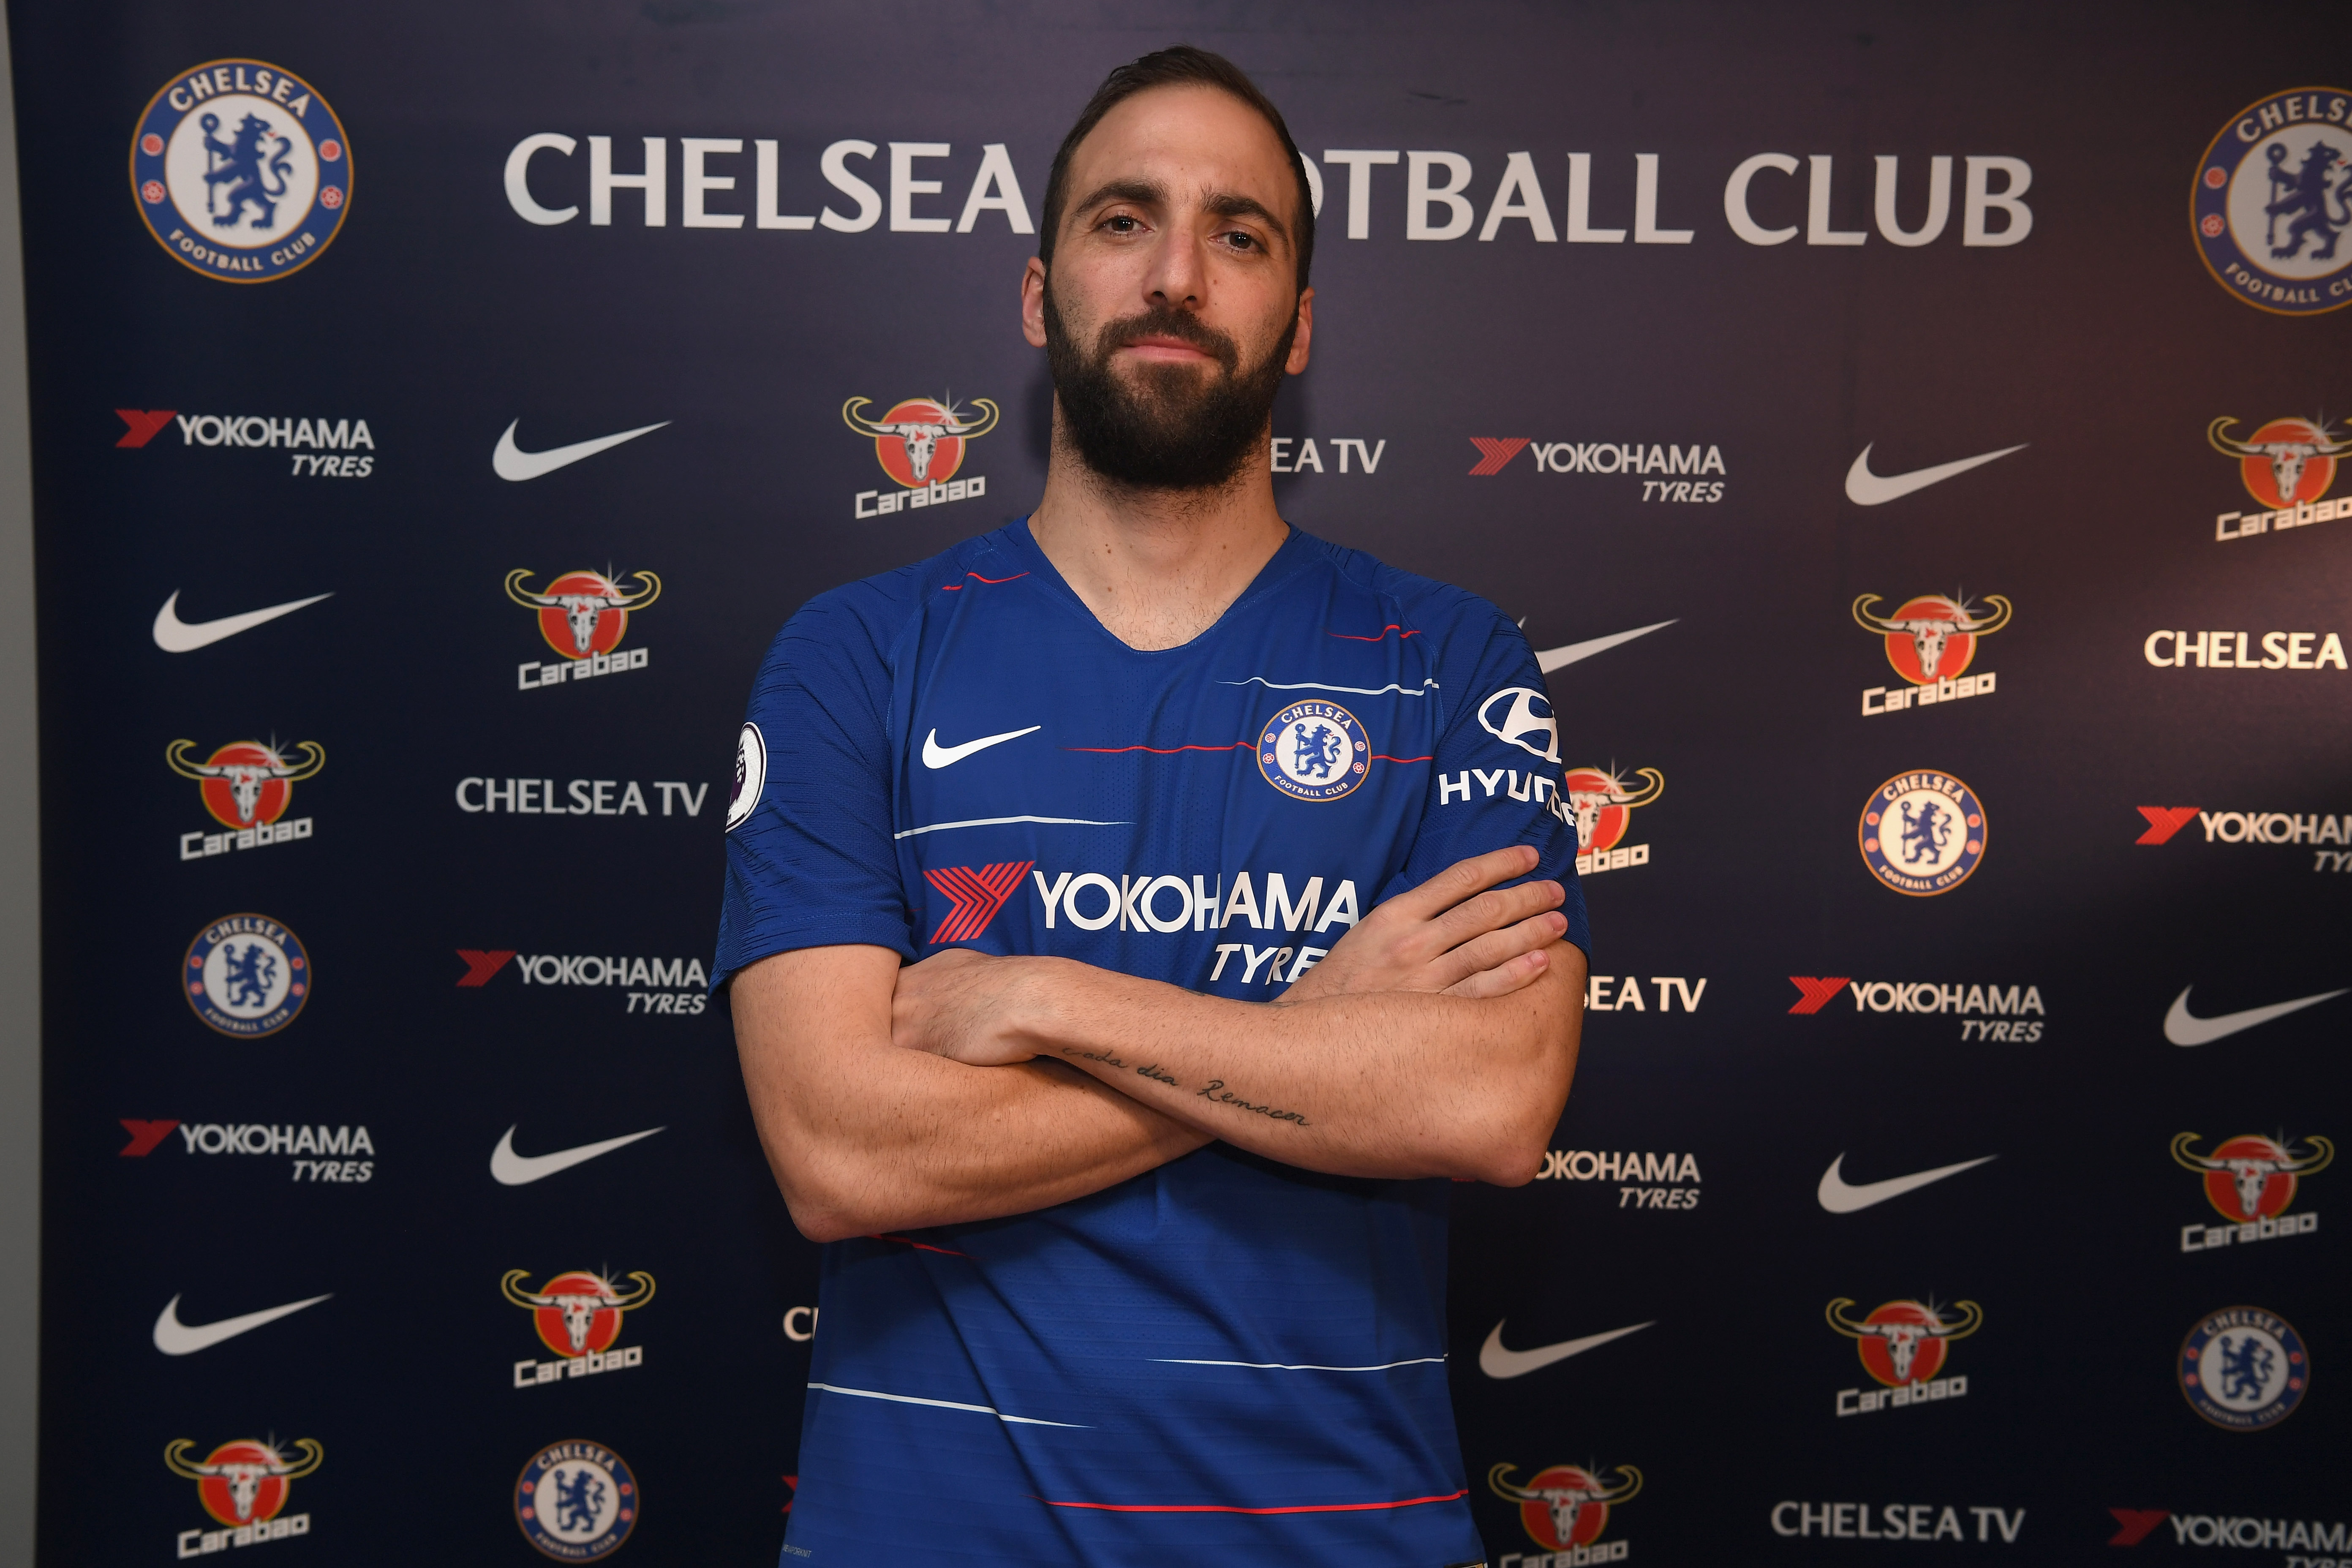 Higuain performance clauses for €18m loan include third place and Europa League title — report